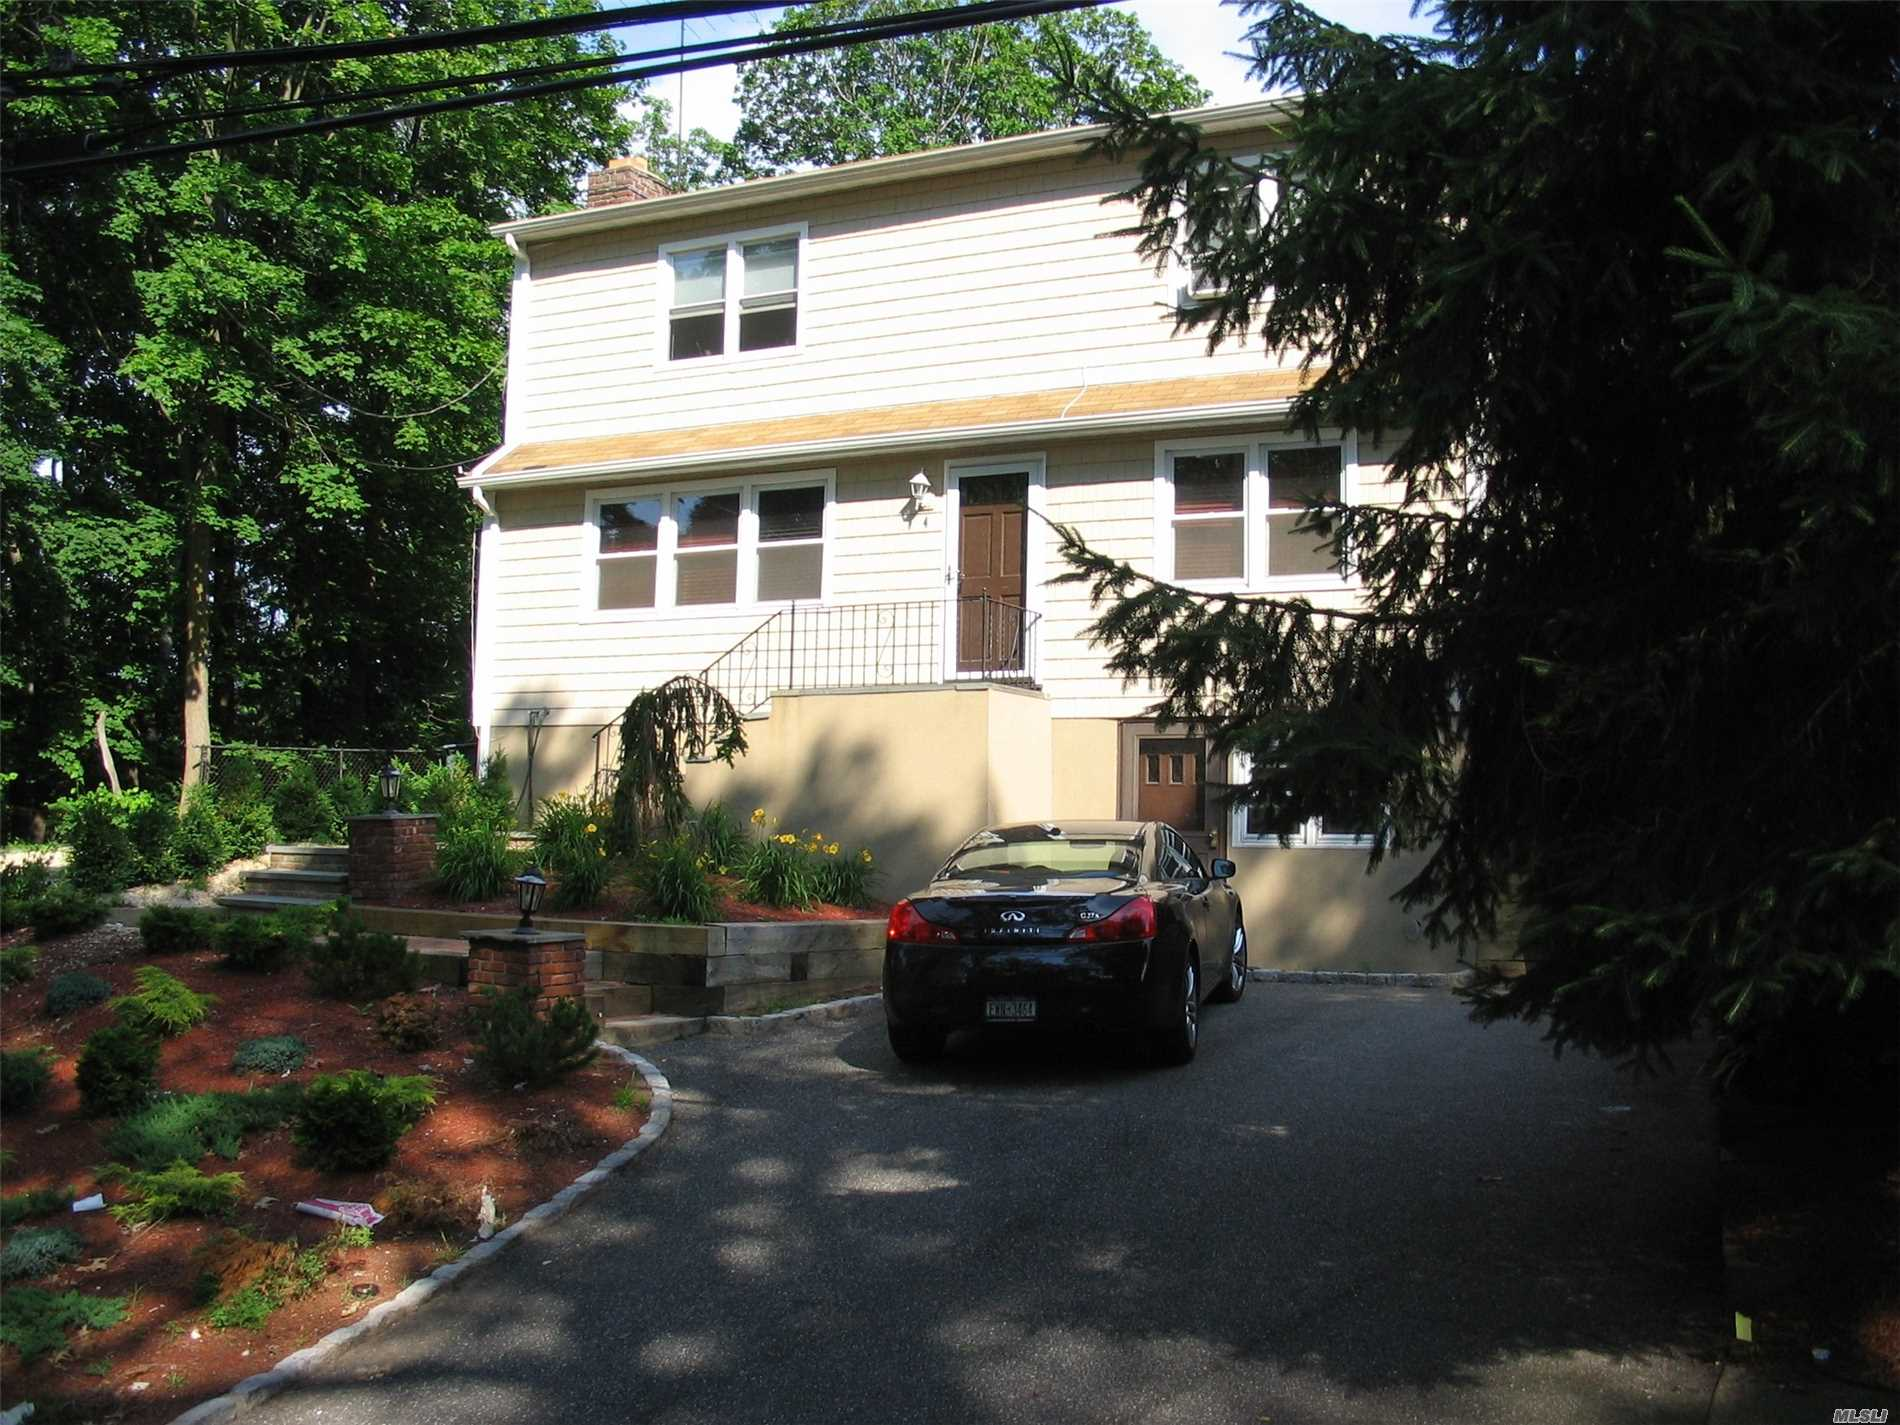 Spacious 4 Bedroom Colonial Located Near The Village Area Of Huntington. Large Bedrooms With Large Closets.Very Private Back Yard With Gorgeous In Ground Pool And Decking.Landlord Requests Rental Application And Full Credit And Screening Process. Landlord Will Accept Pets With A Security Deposit.